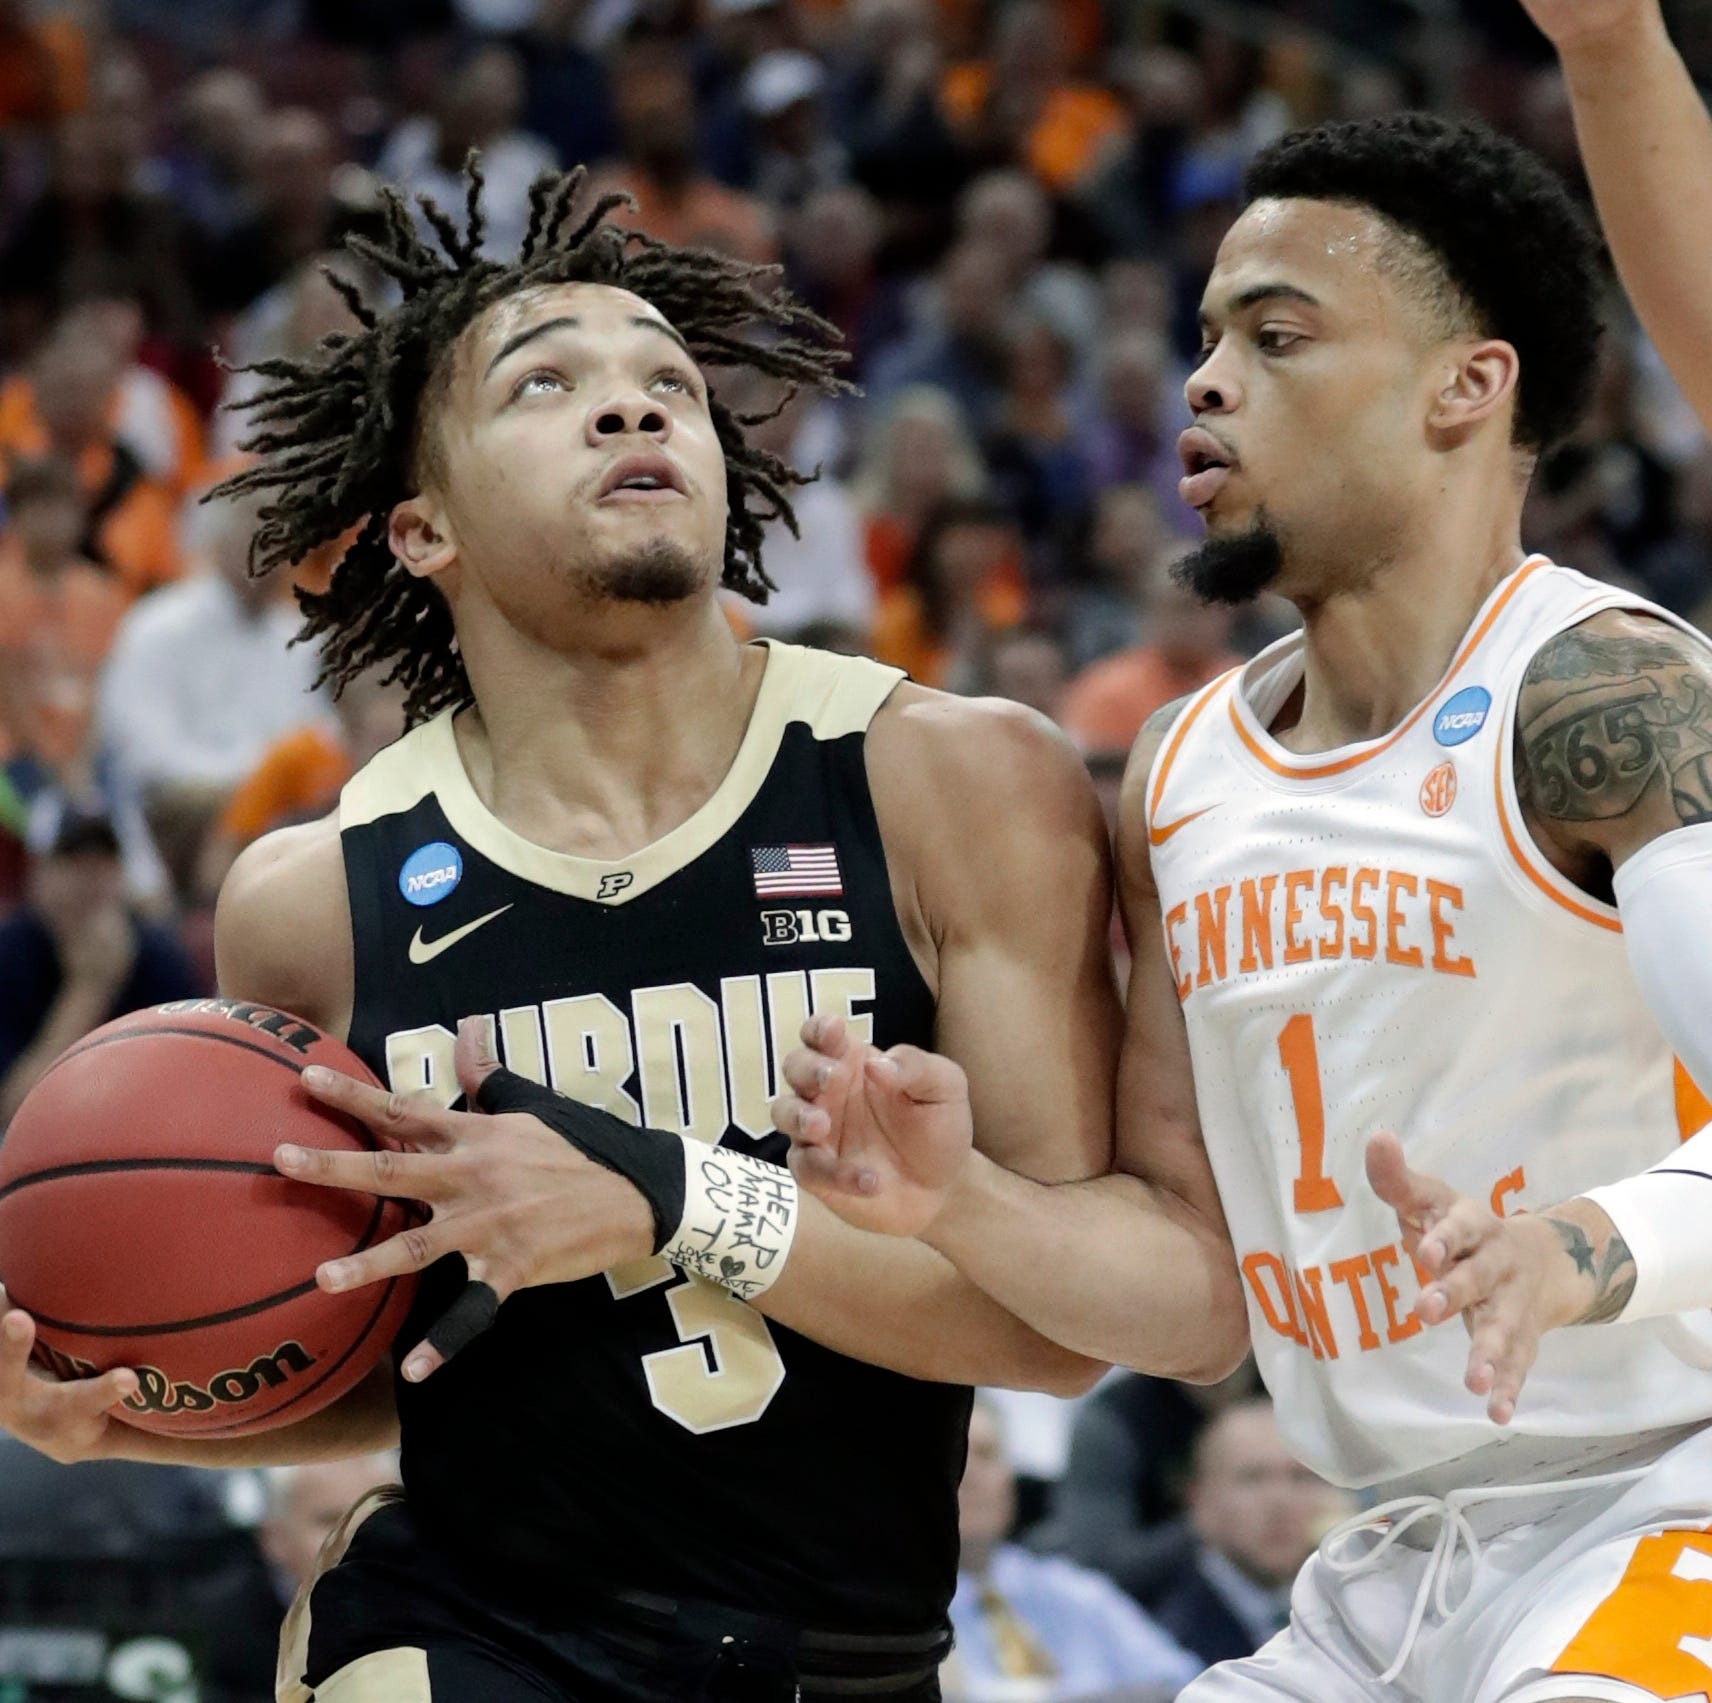 Twitter debates if Tennessee's Lamonte Turner fouled Purdue's Carsen Edwards